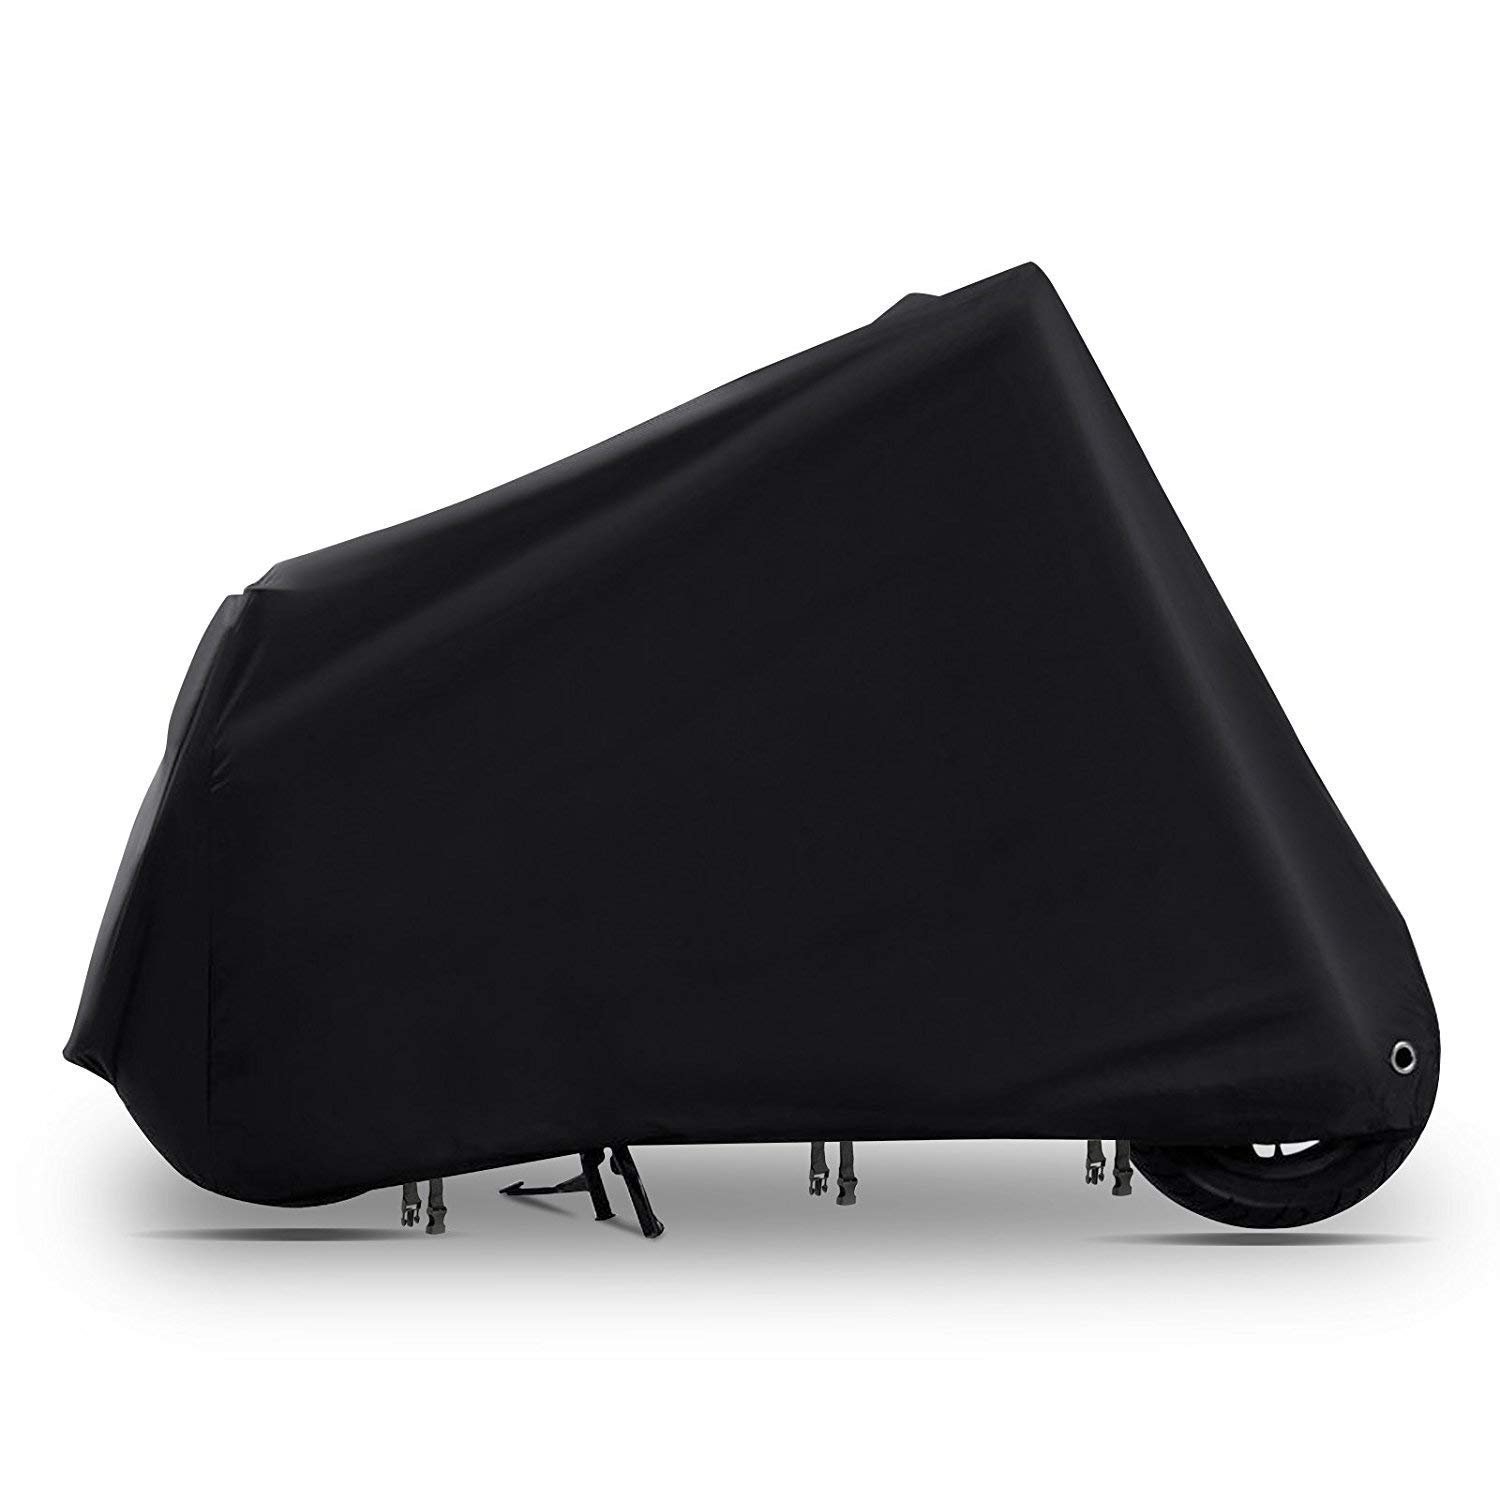 Vmotor 210D Oxford All-Weather Motorcycle Cover-Heavy Duty Extra Large for 104 Inch Motorcycles Like Honda, Yamaha, Suzuki, Harley. Keeps Your Bike Dry and Protected Year Round(Black)